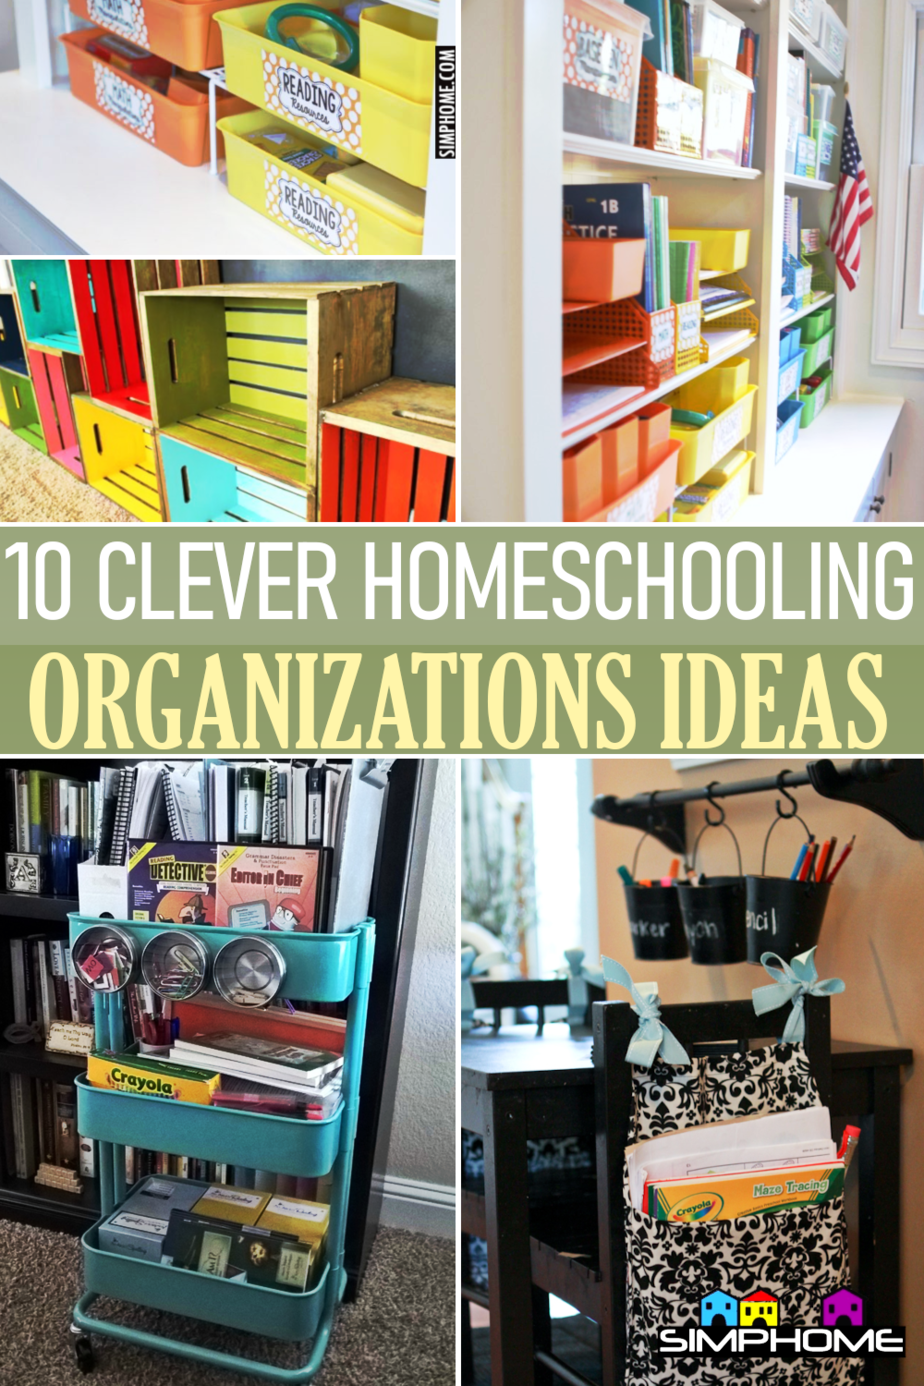 10 Clever Homeschooling Organization Ideas for Small Space via Simphome.comFeatured